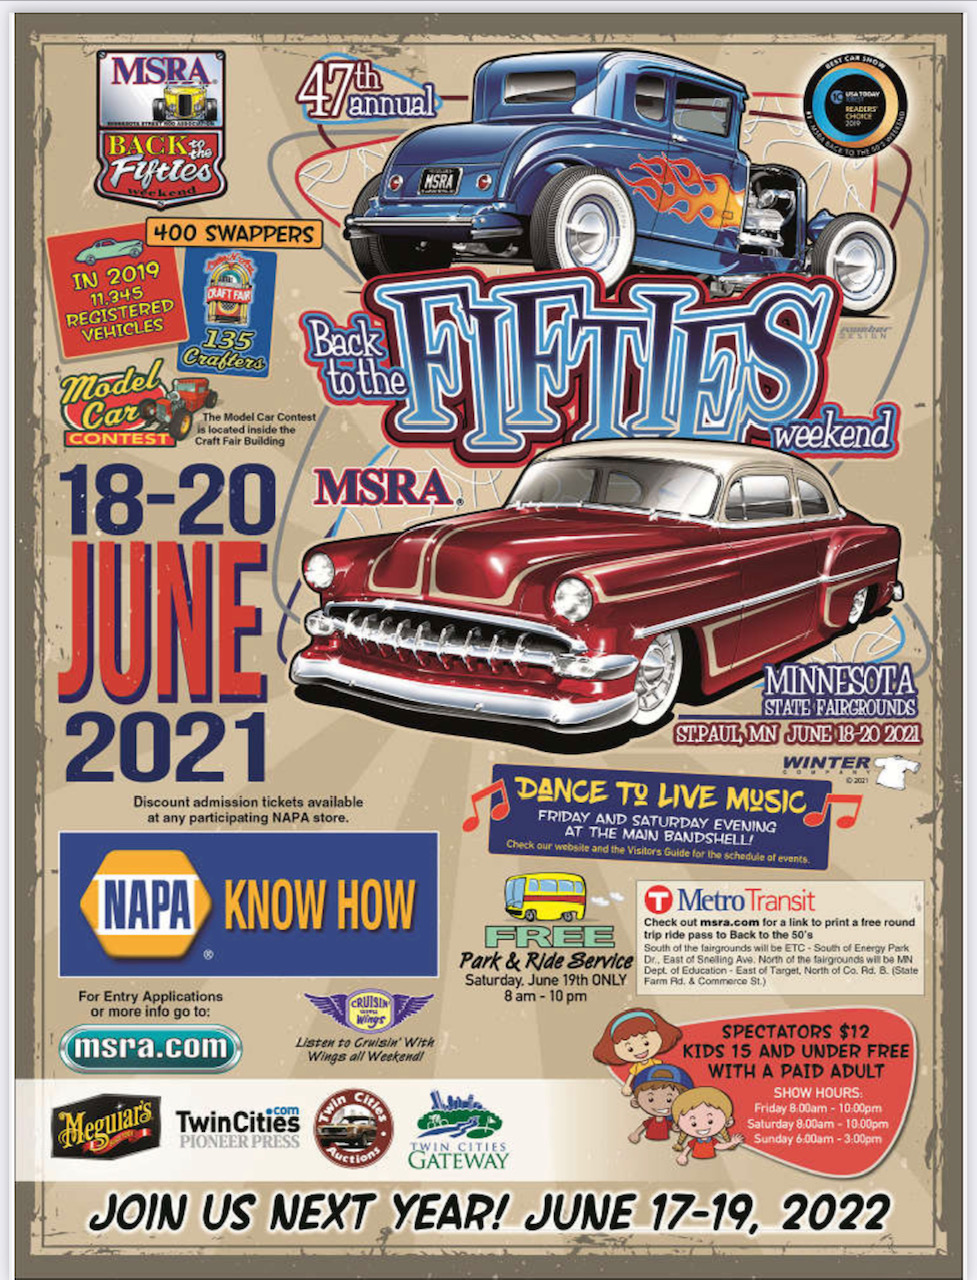 MSRA Back to the 50's Weekend 2021